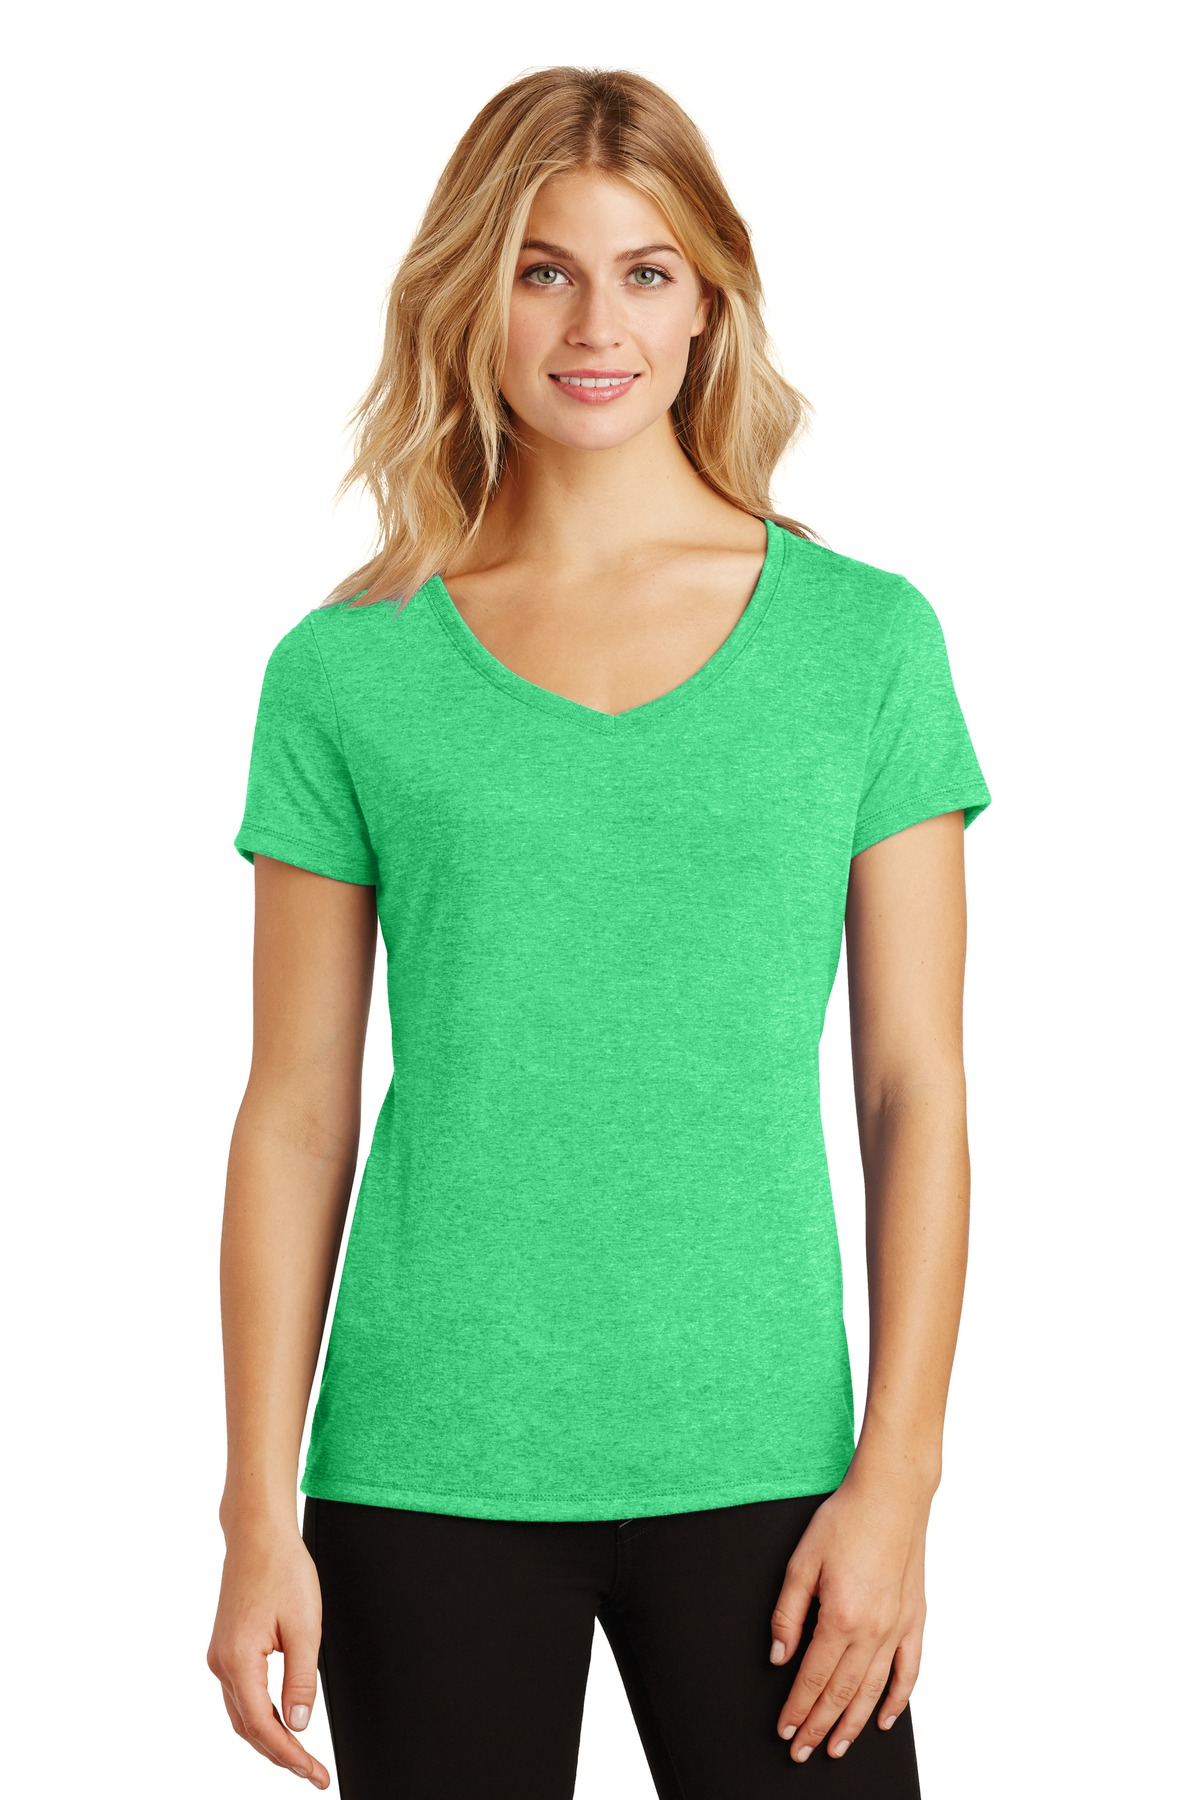 District ®  Women's Perfect Tri ®  V-Neck Tee. DM1350L - Green Frost